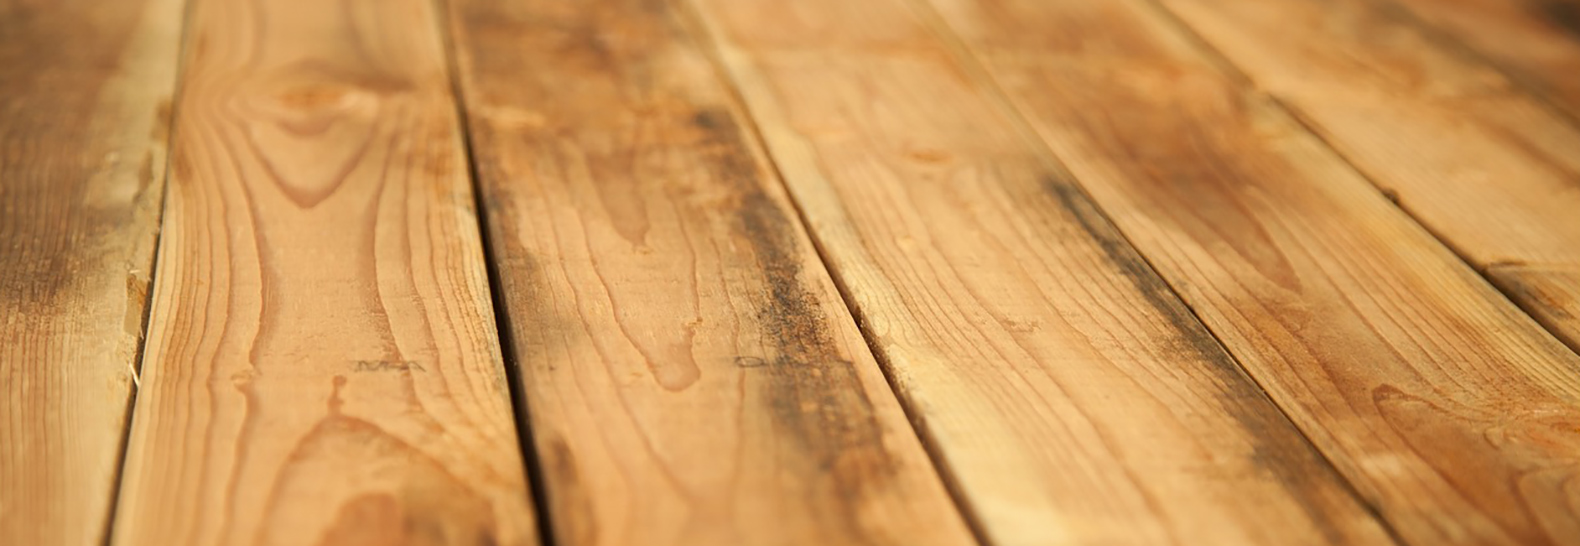 Revolutionary floors made from waste wood pulp generate clean energy